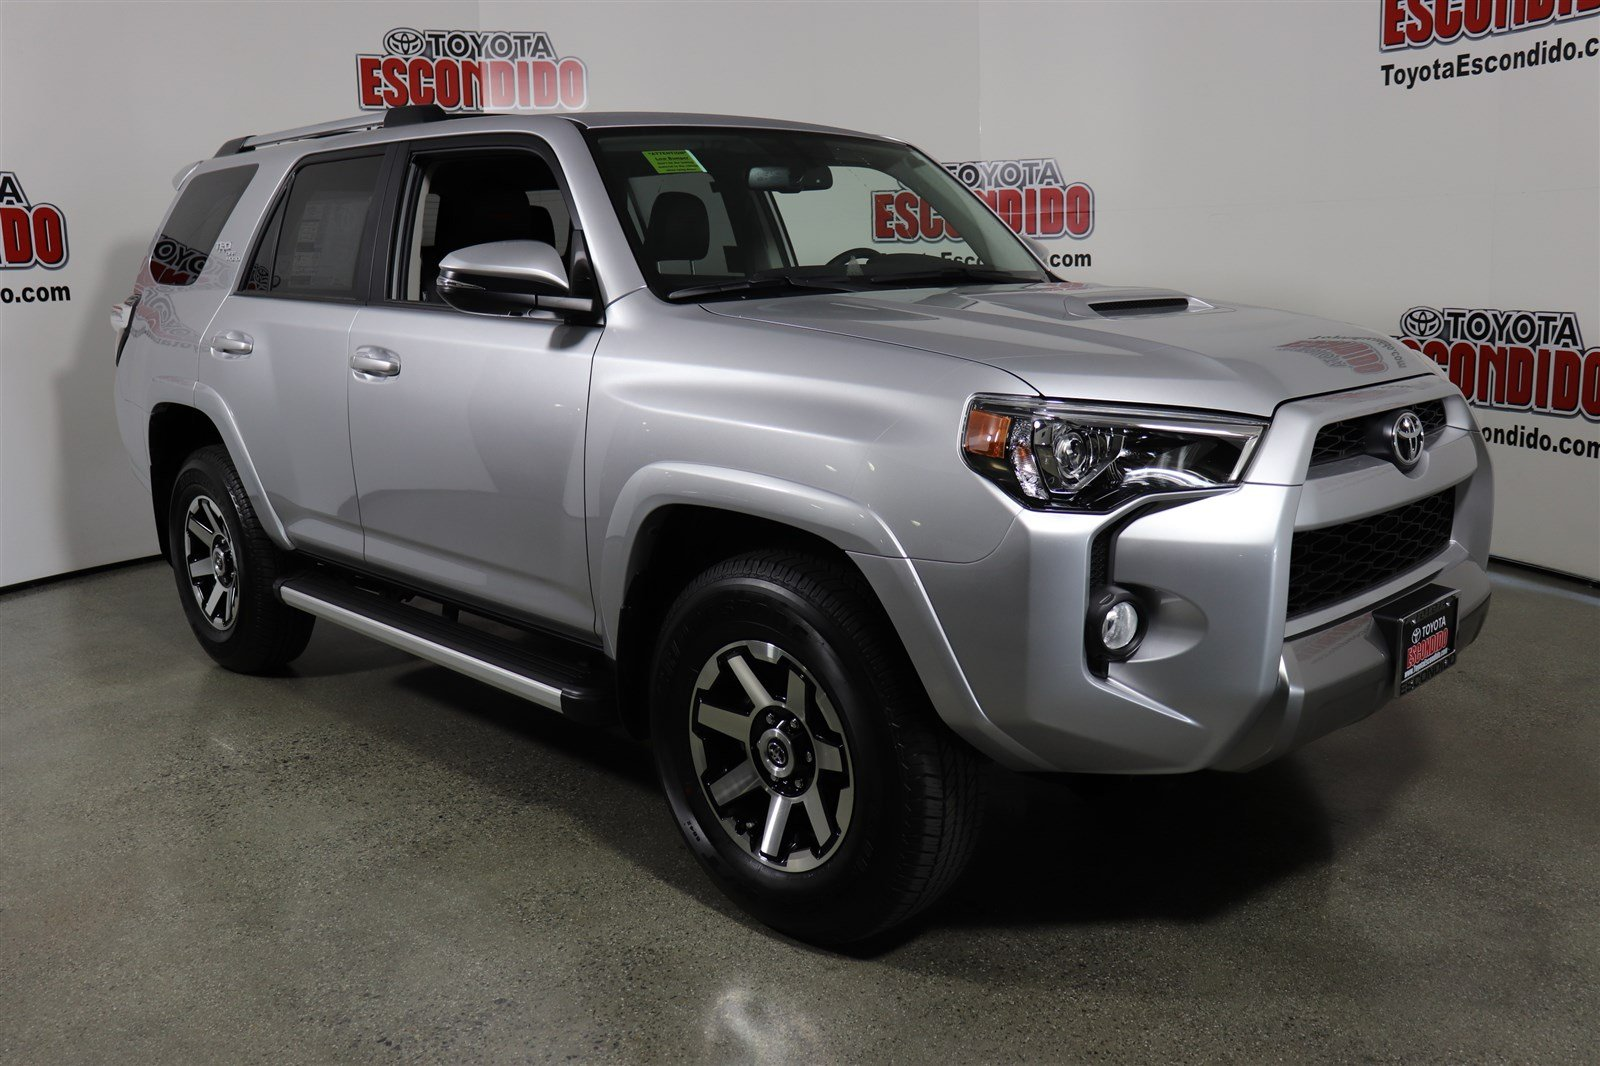 new 2018 toyota 4runner trd off road premium sport utility in escondido 1018105 toyota escondido. Black Bedroom Furniture Sets. Home Design Ideas